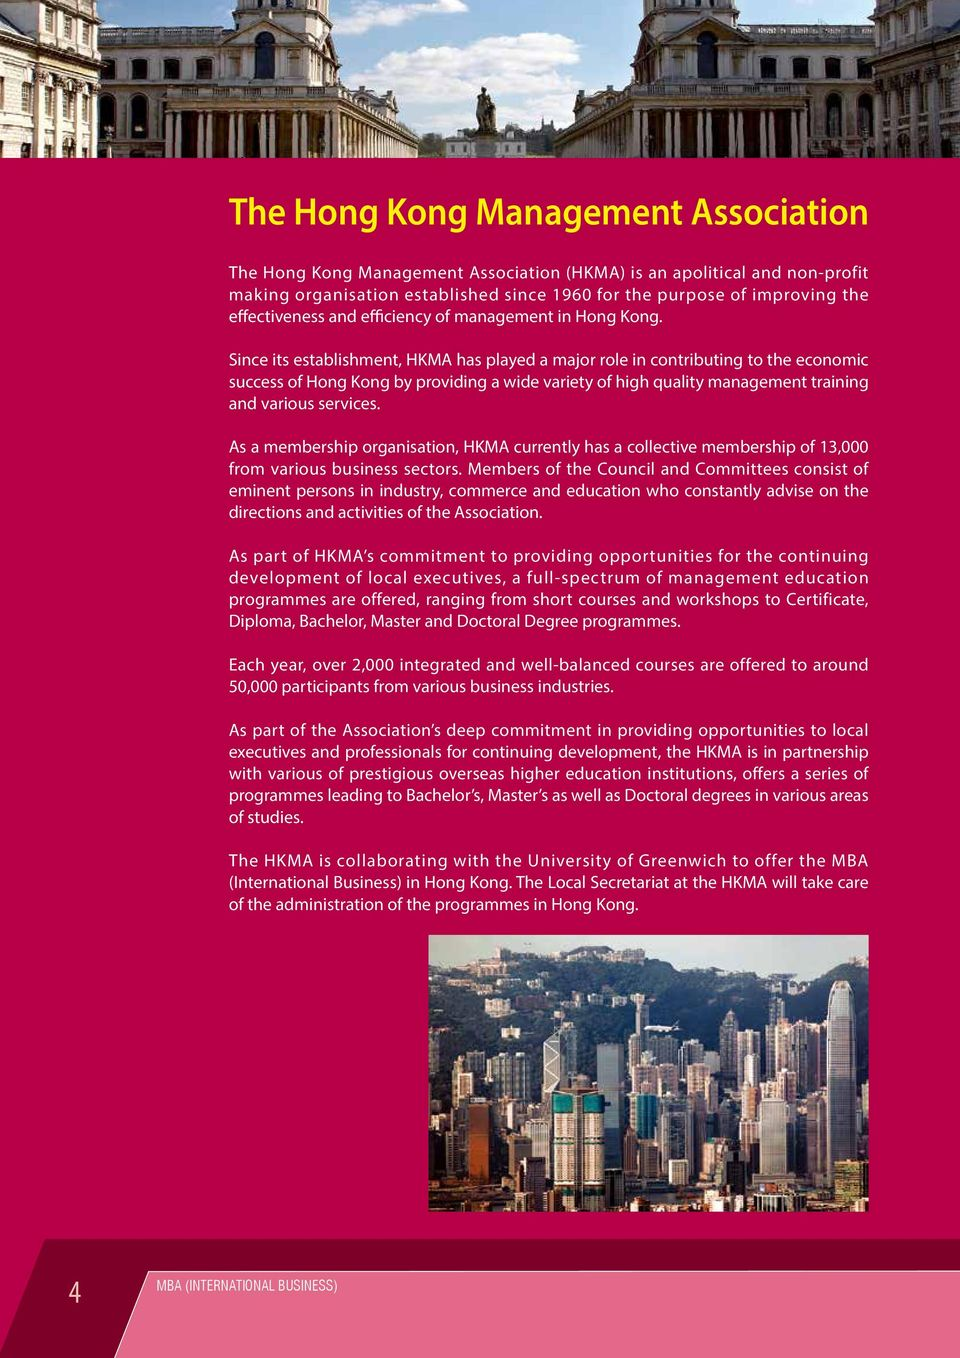 Since its establishment, HKMA has played a major role in contributing to the economic success of Hong Kong by providing a wide variety of high quality management training and various services.